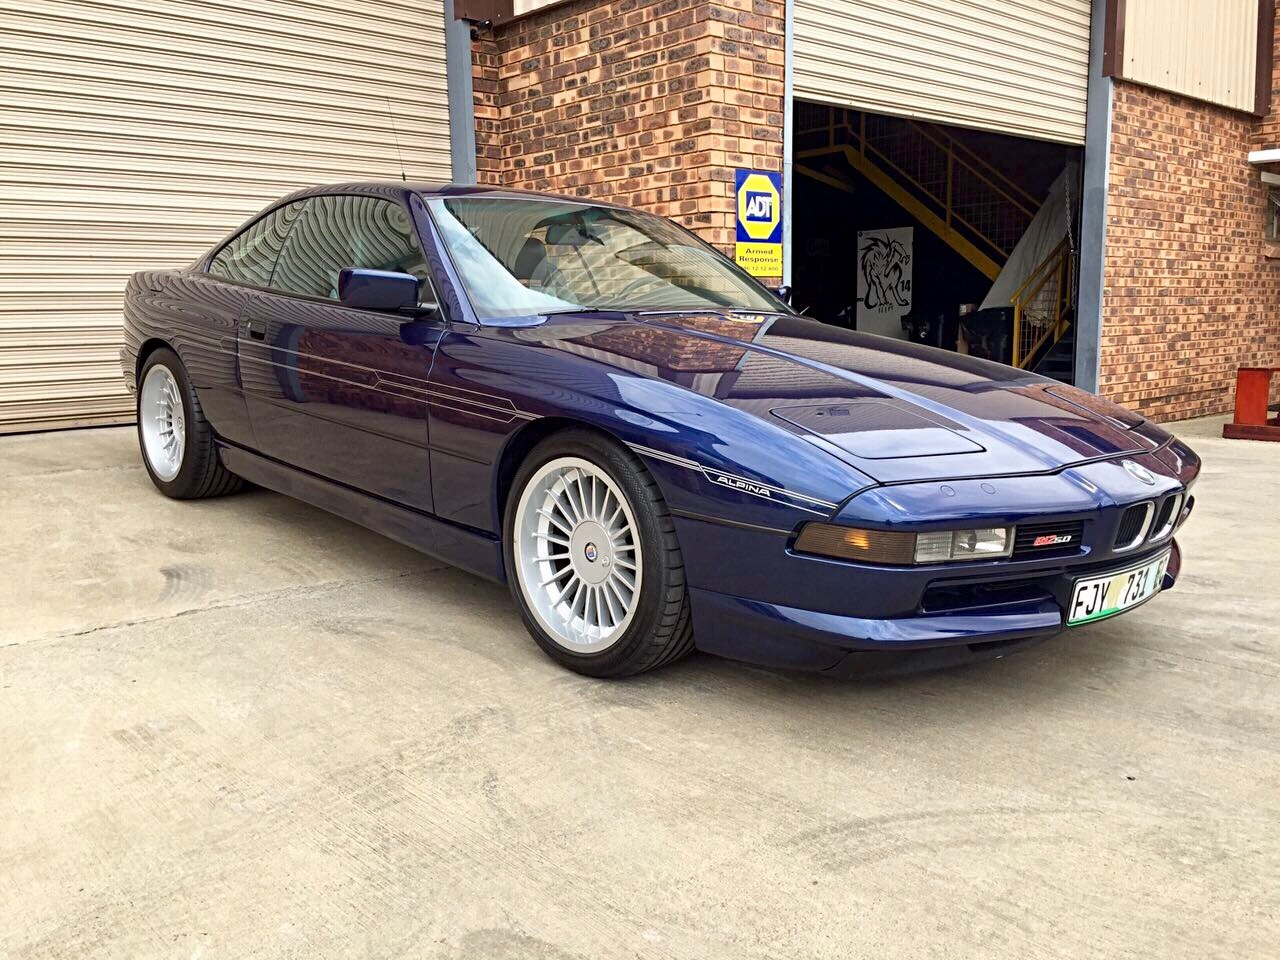 bmw 850i b12 alpina 5 0 up for sale in south africa tapatalk. Black Bedroom Furniture Sets. Home Design Ideas